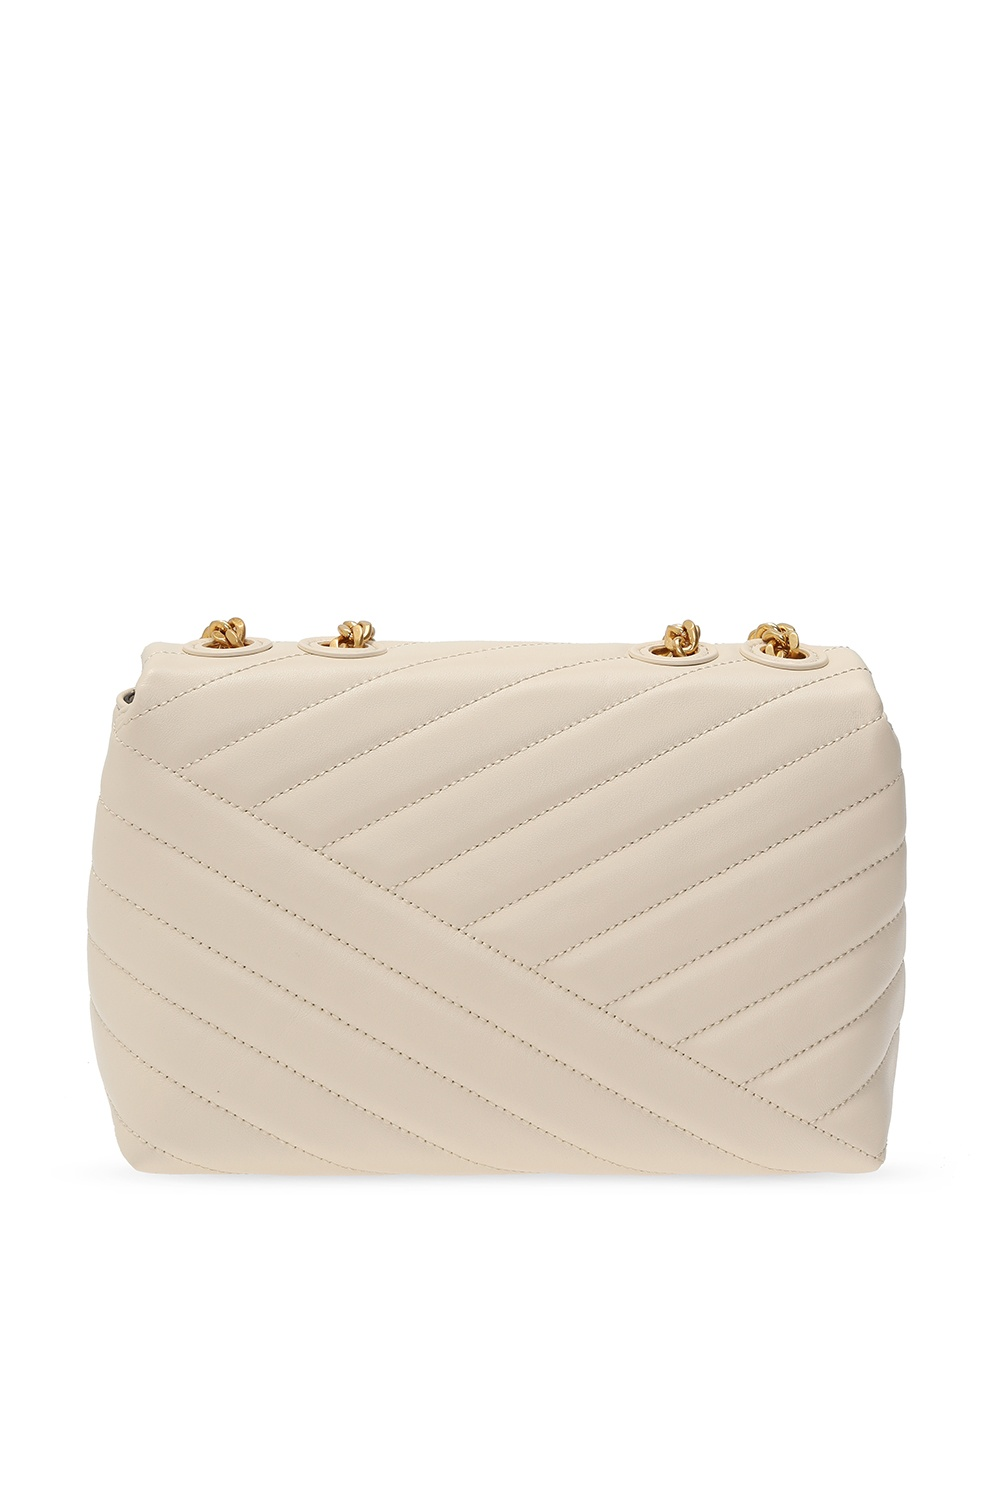 Tory Burch 'Kira' quilted shoulder bag